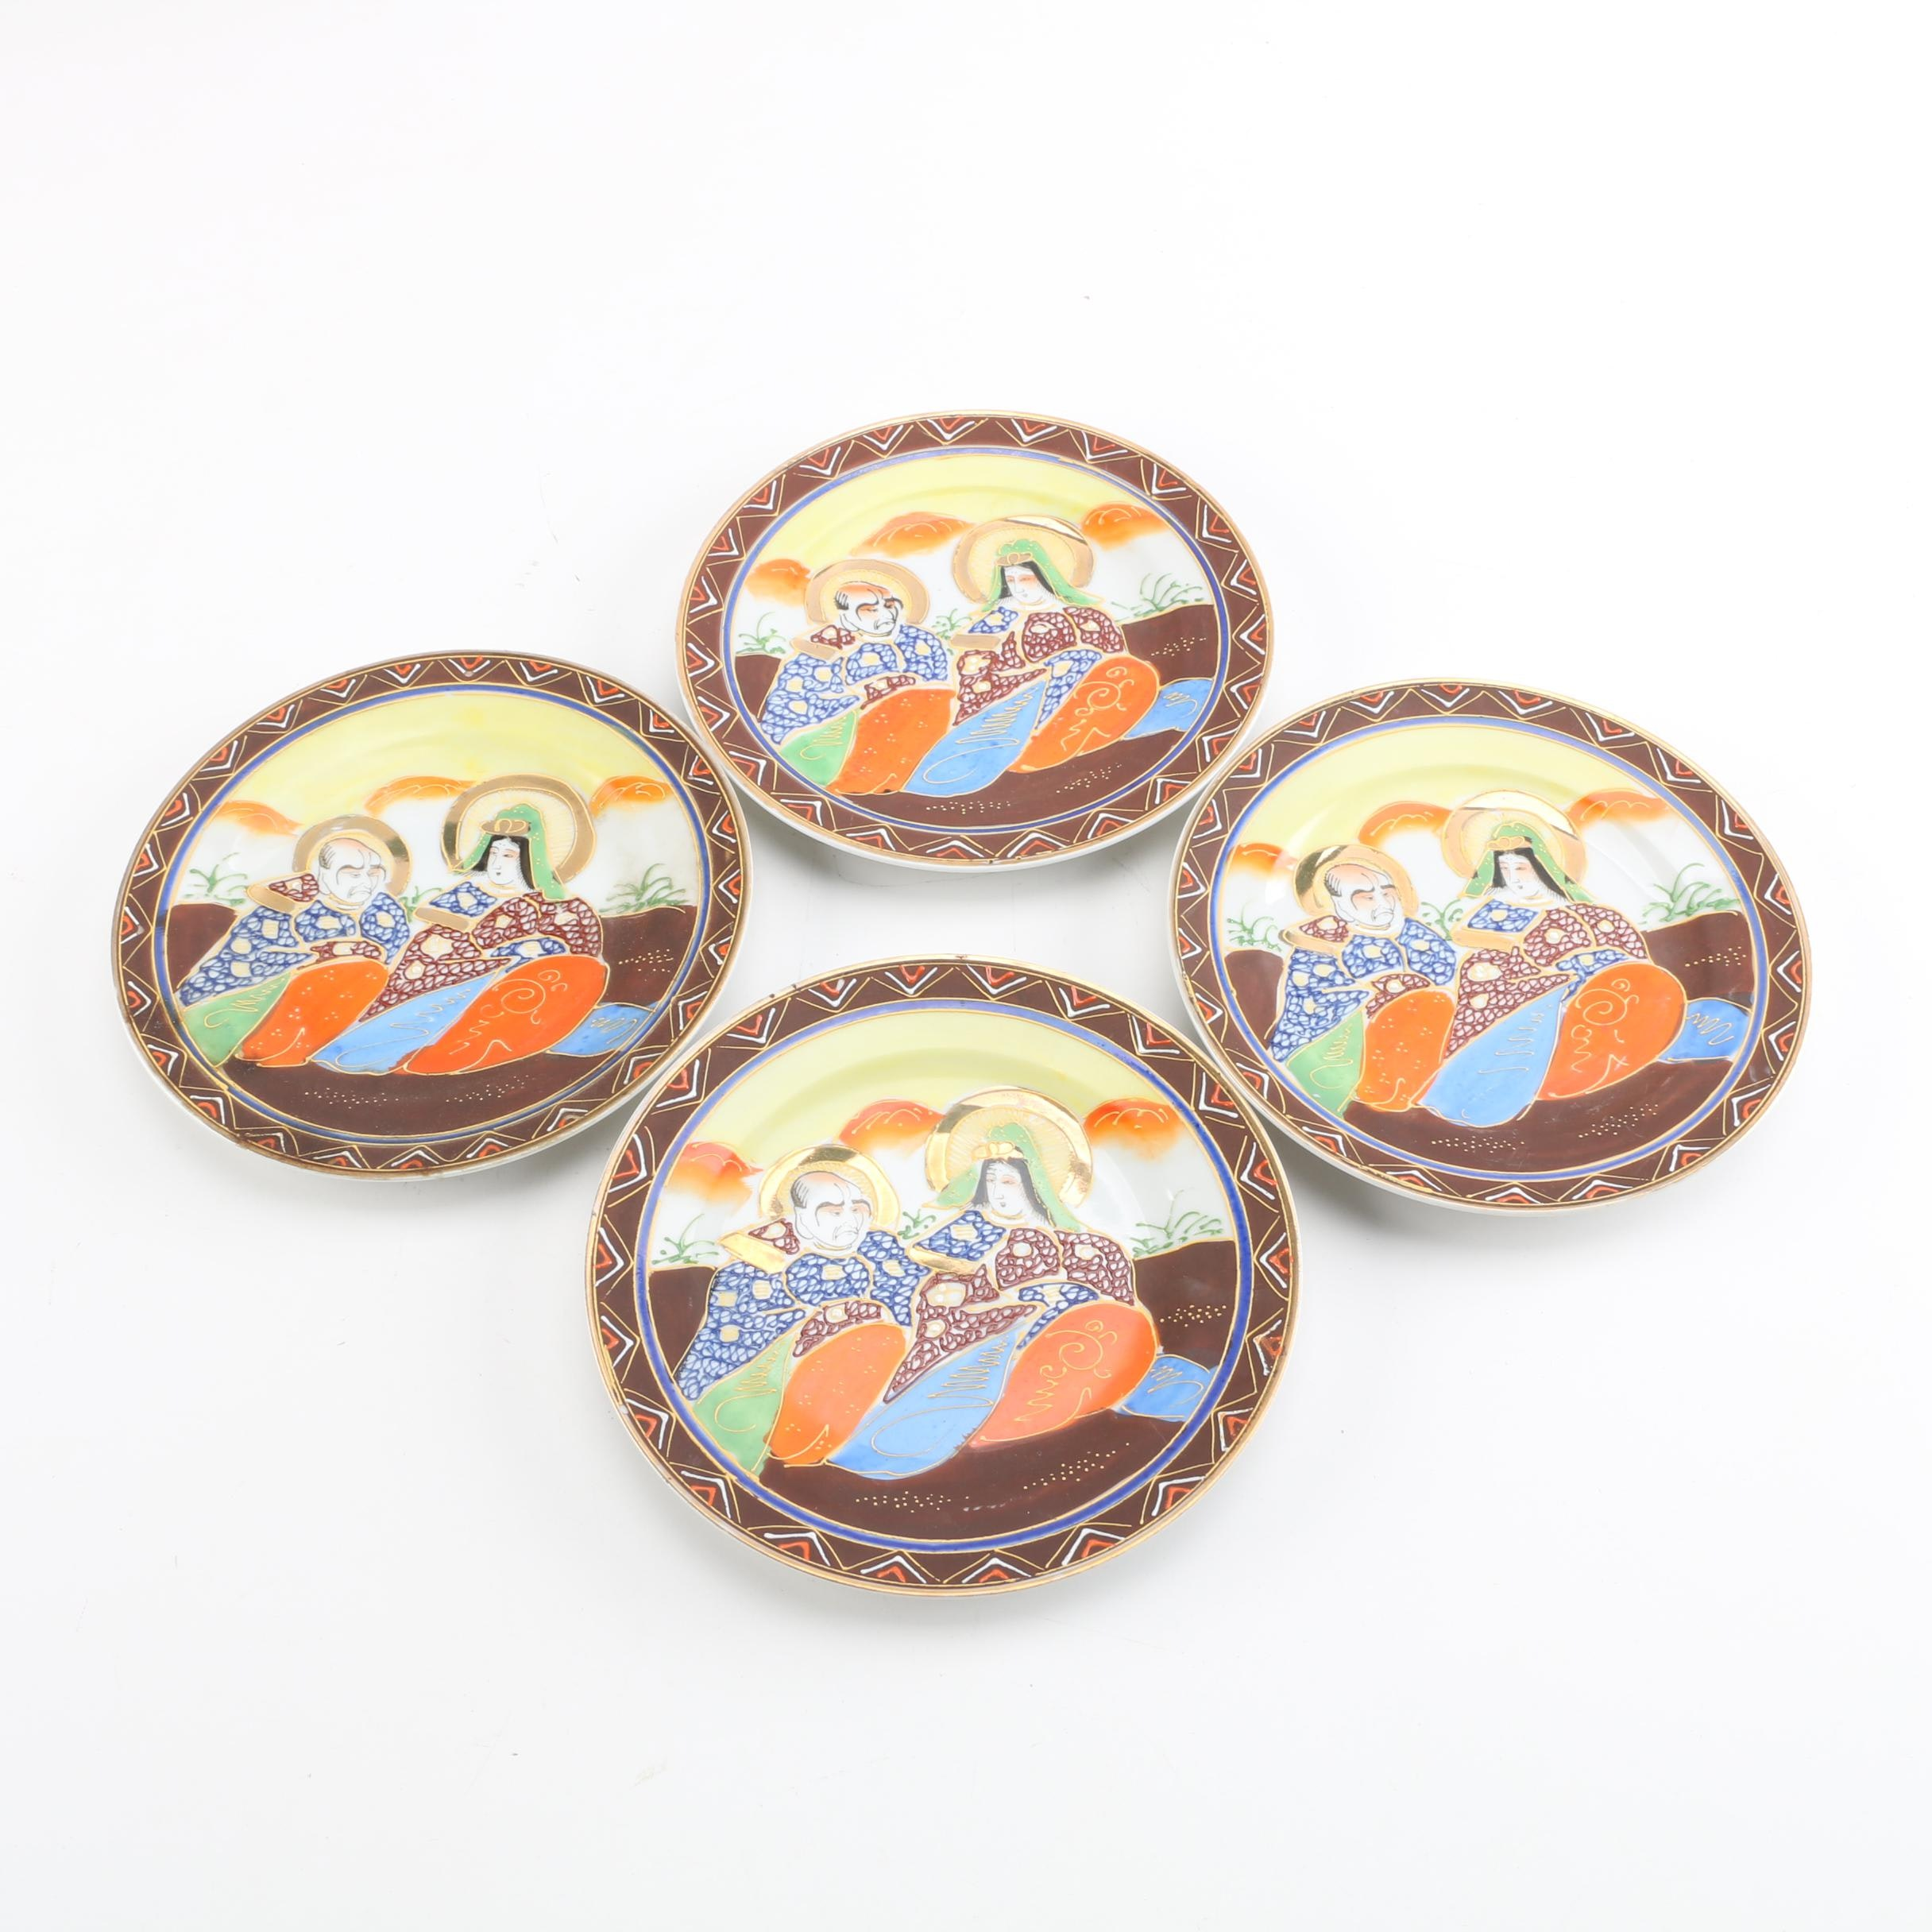 Japanese Satsuma Decorative Porcelain Plates